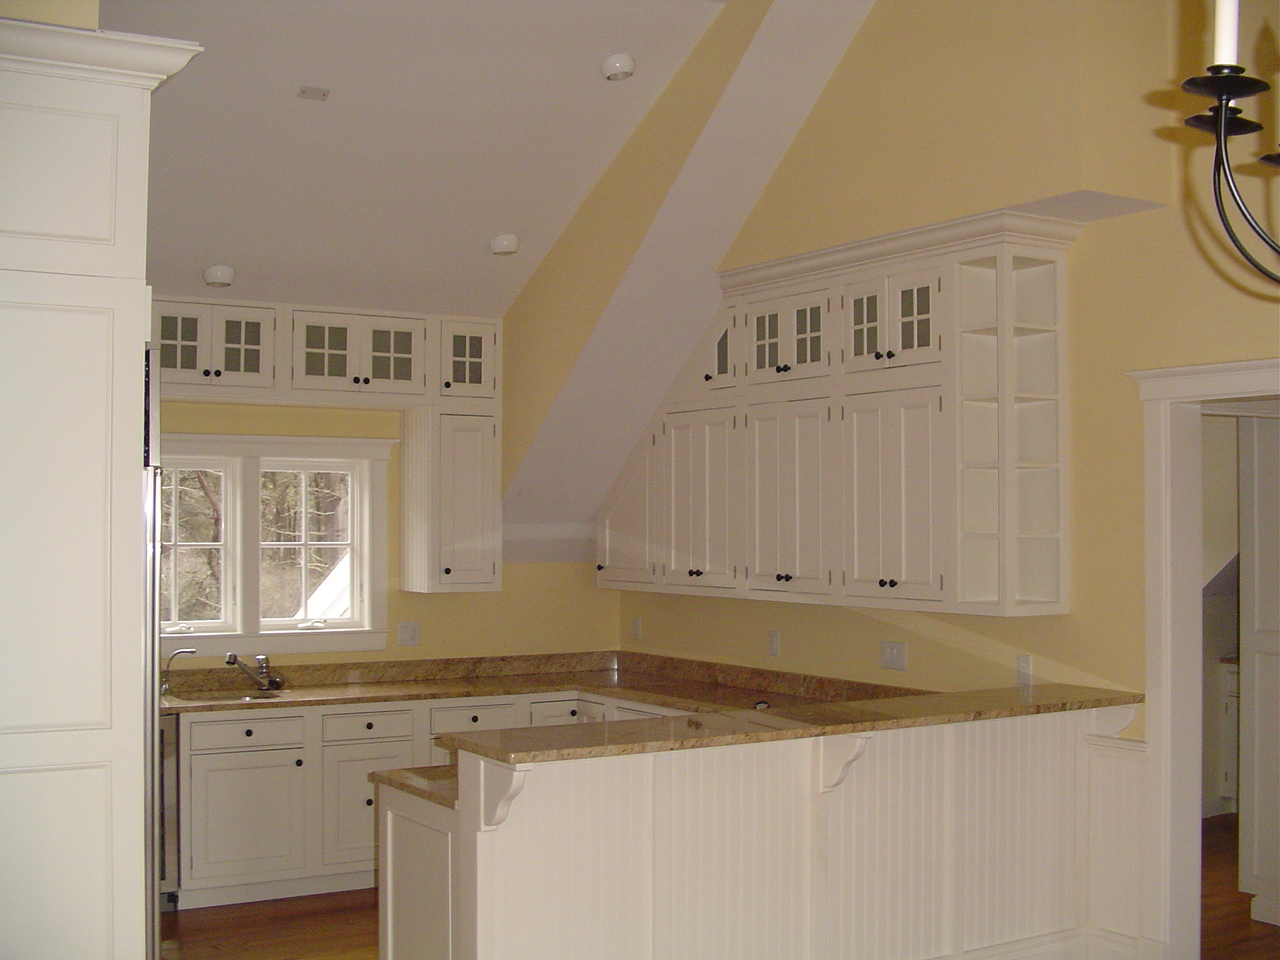 Home design image ideas home interior paint ideas for Home painting design ideas